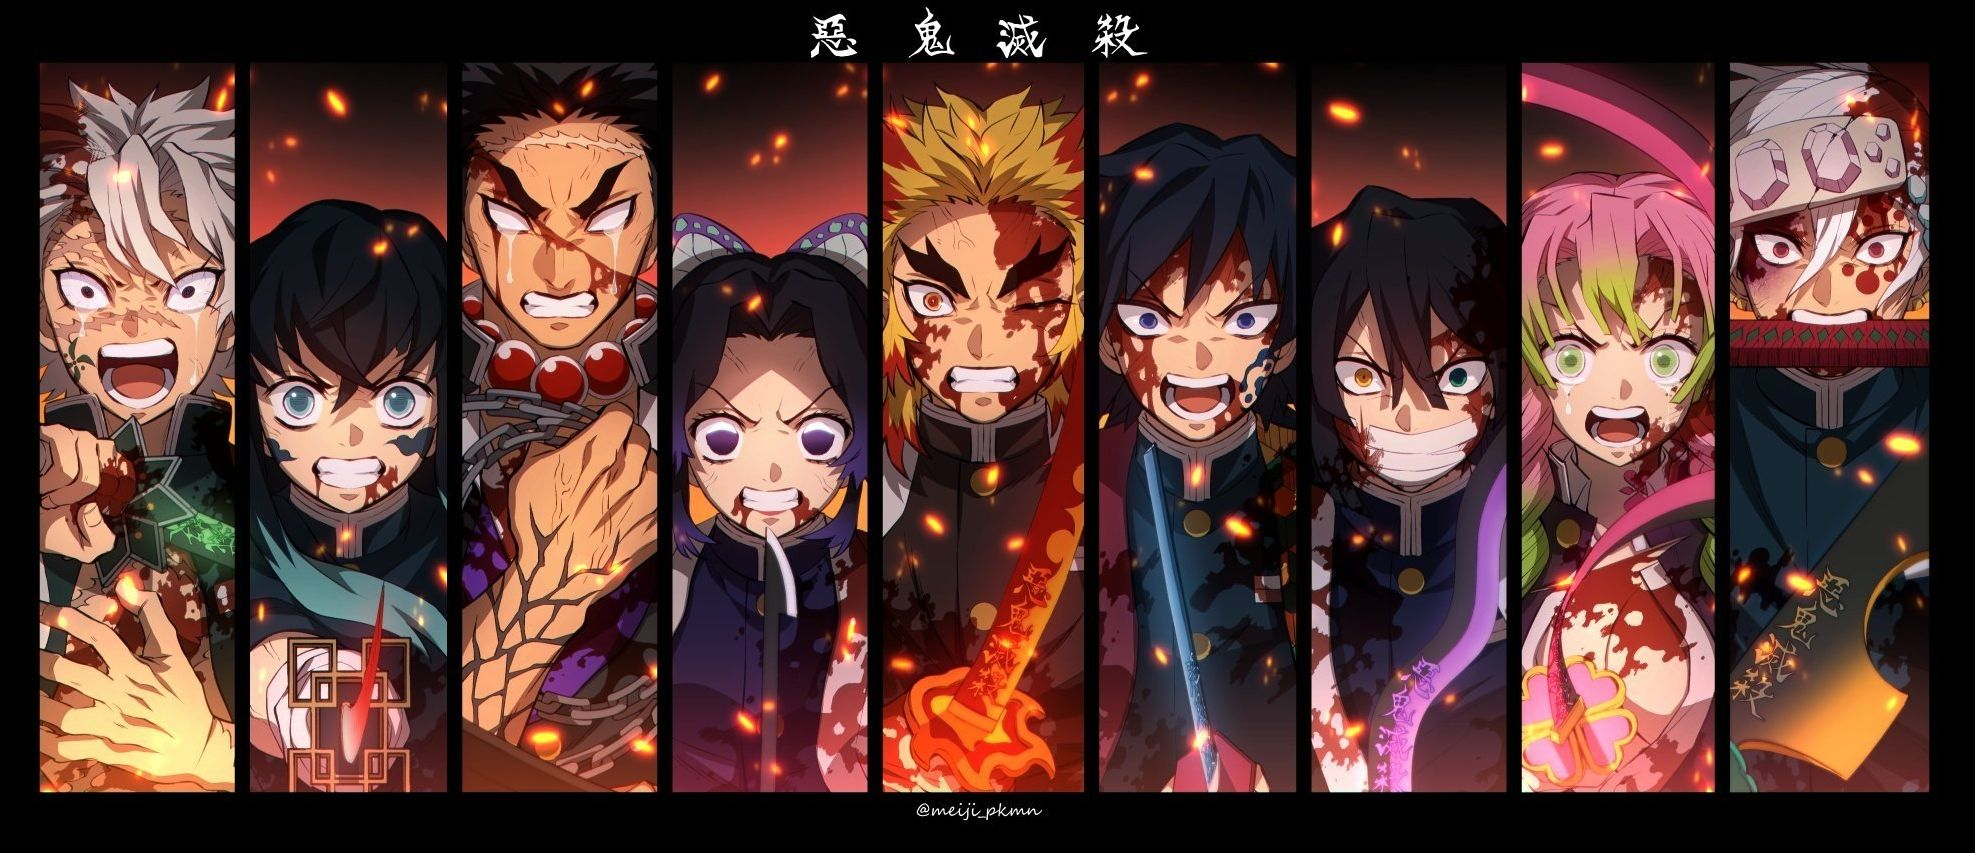 You can also upload and share your favorite anime demon slayer hashira … Demon Slayer Hashira Theme - Manga